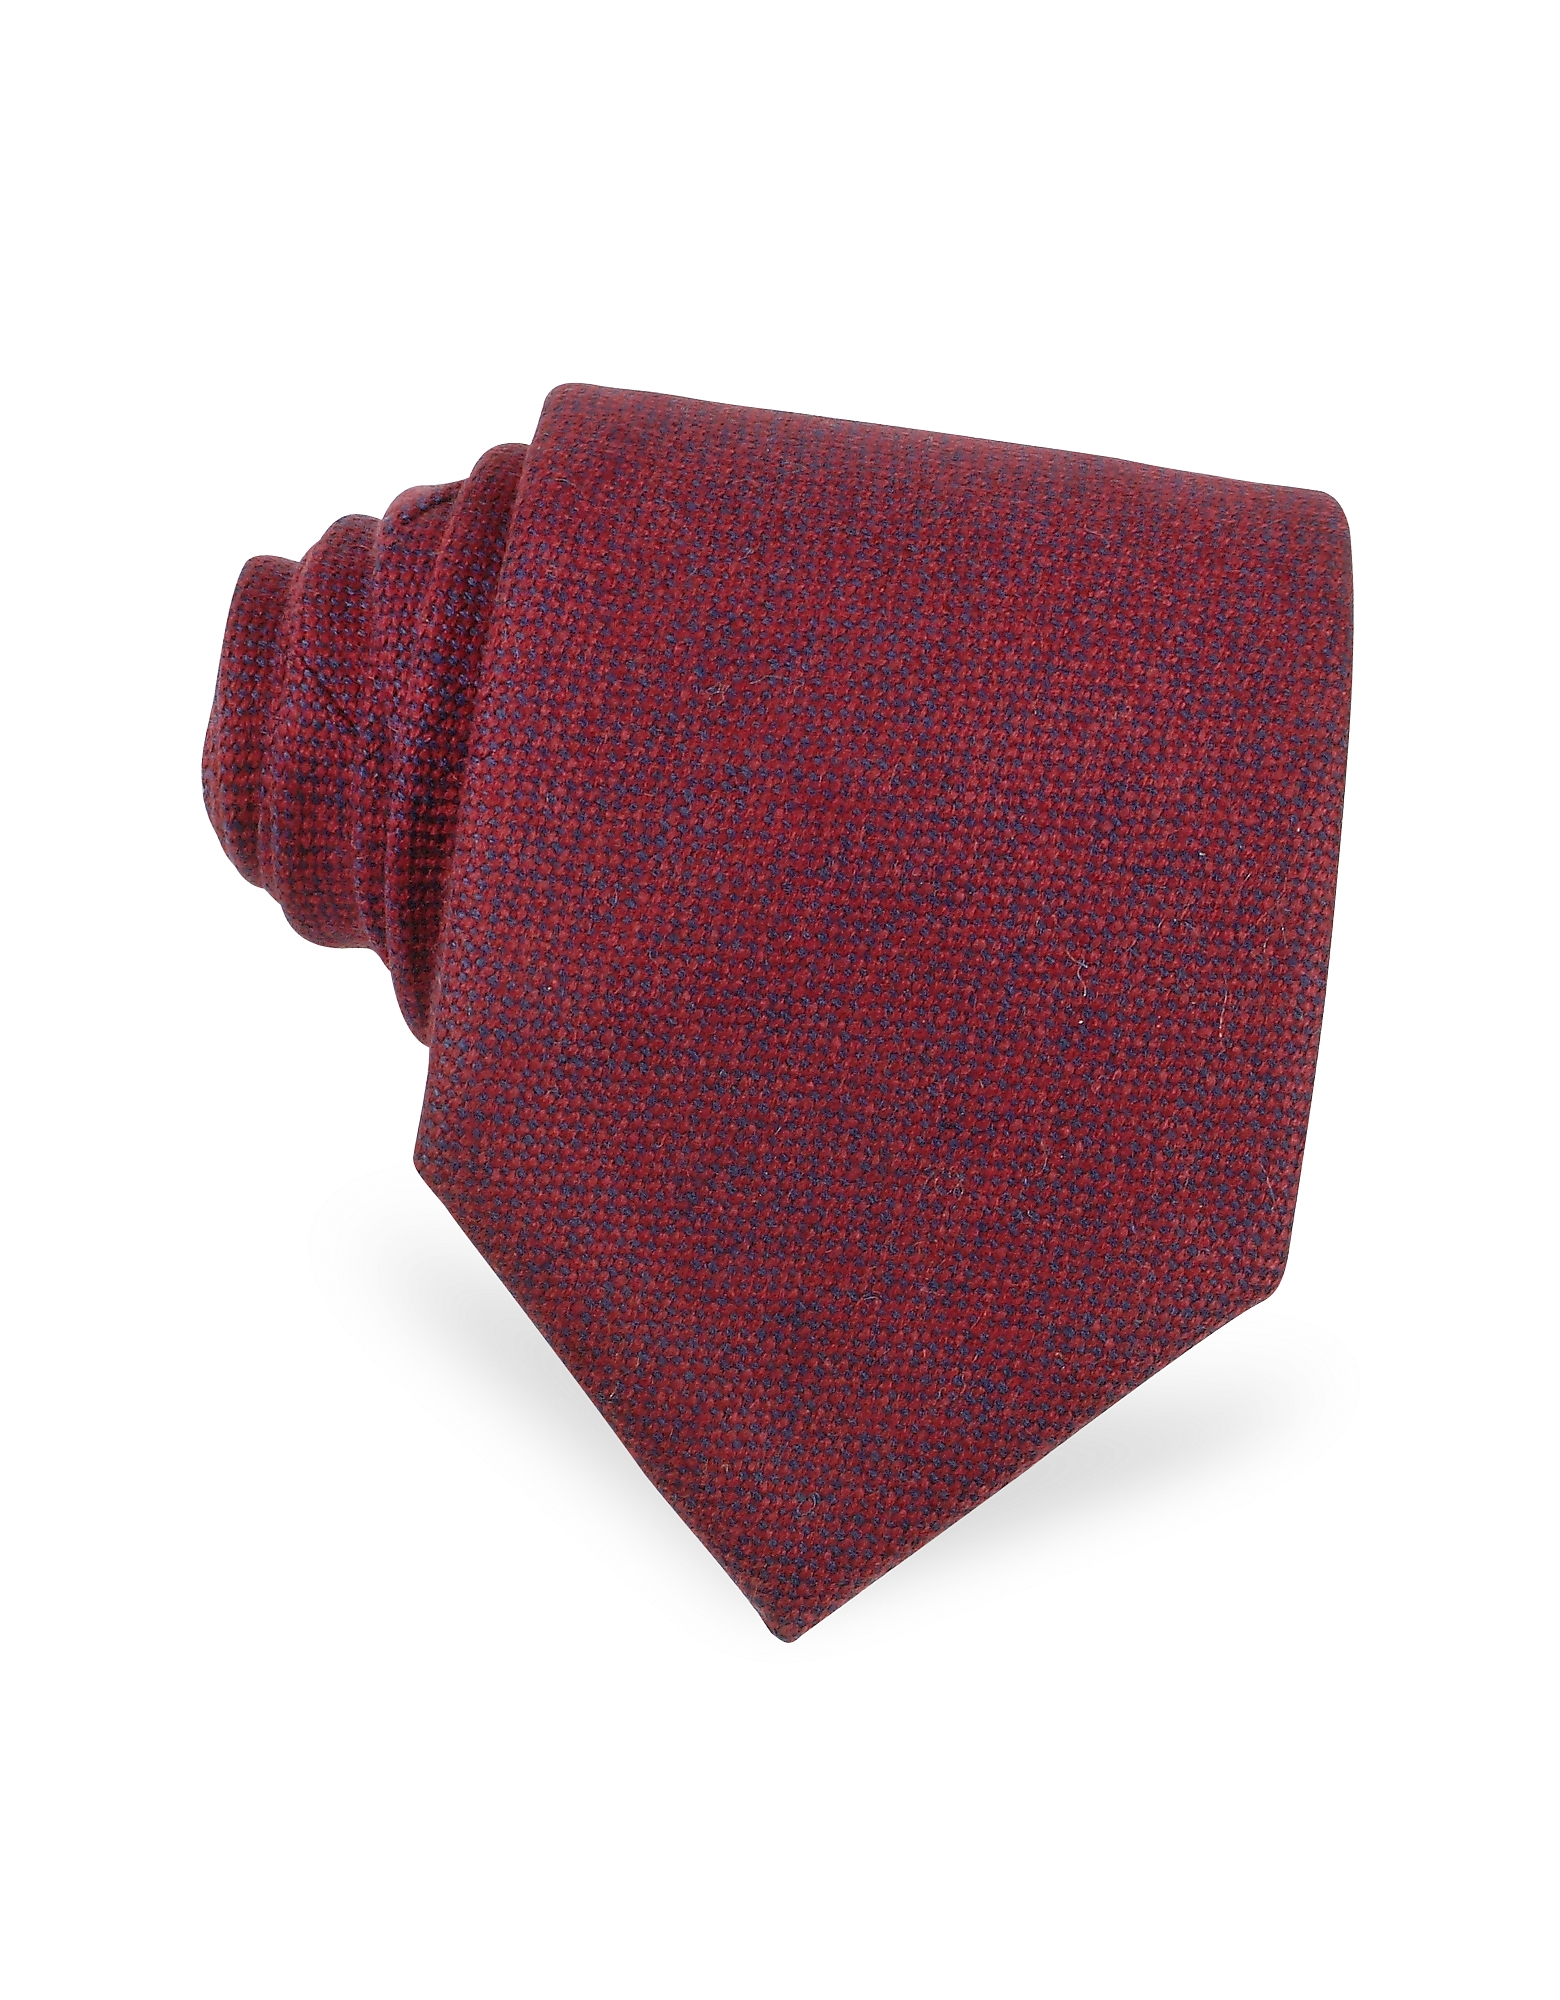 Red and Blue Textured Cashmere Tie